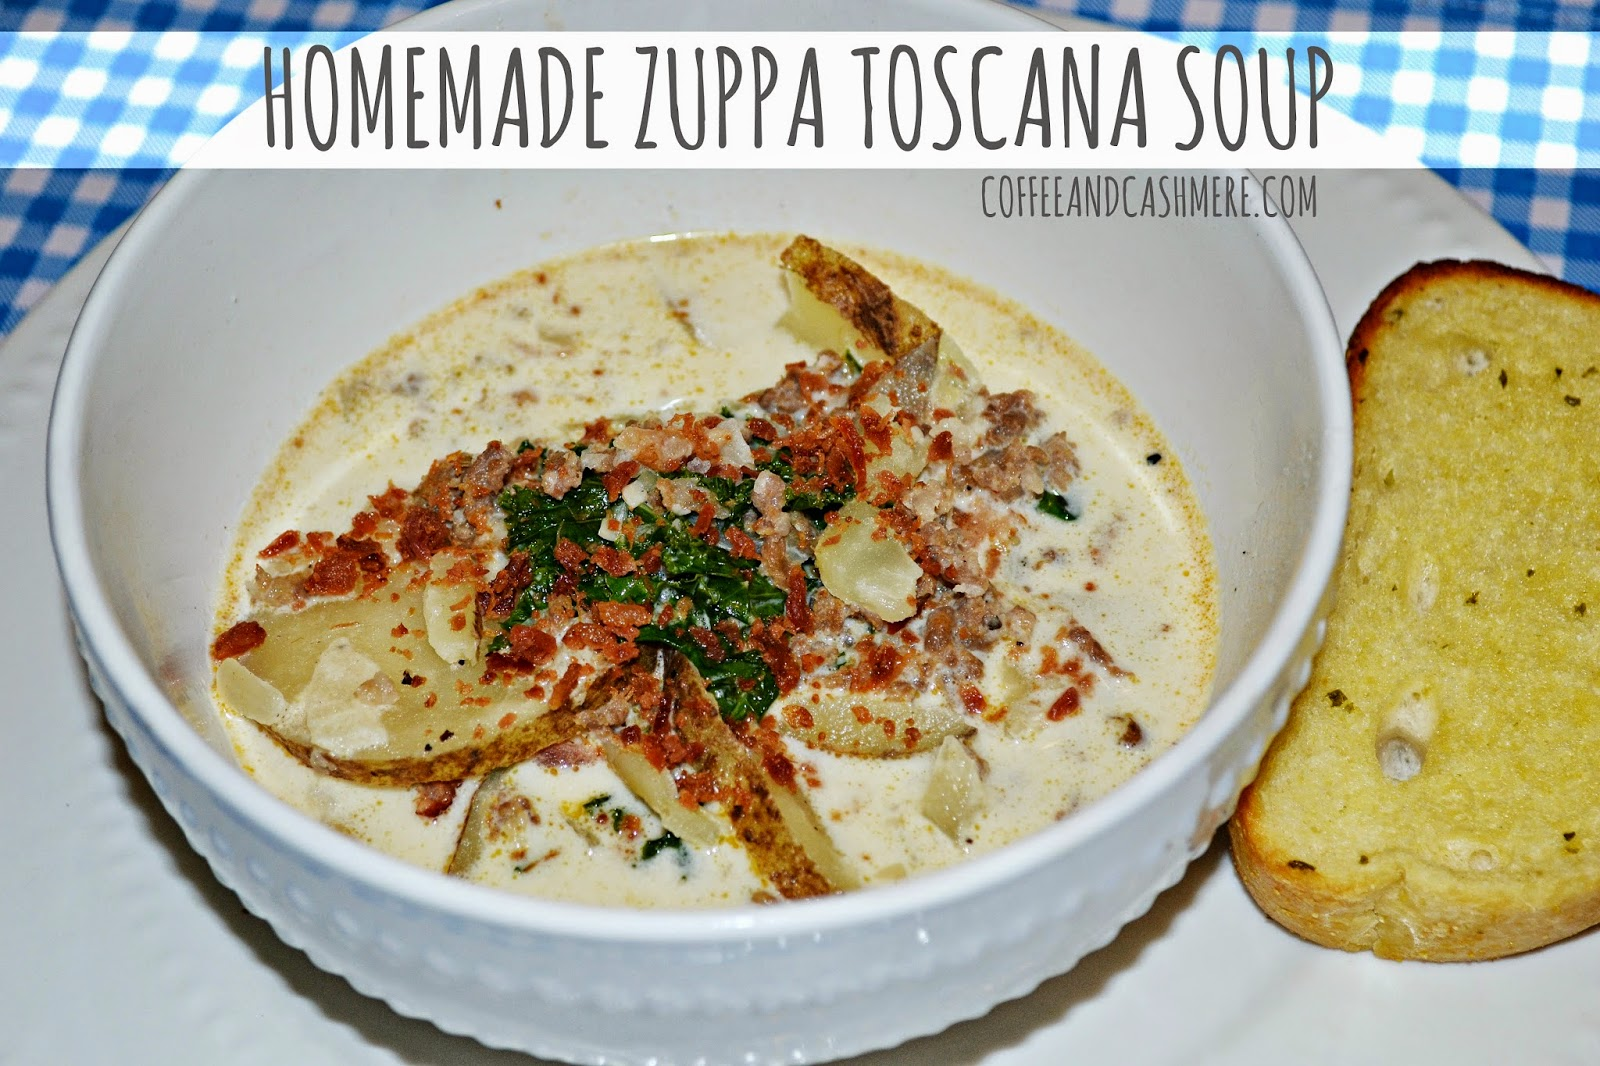 Coffee and Cashmere: Zuppa Toscana